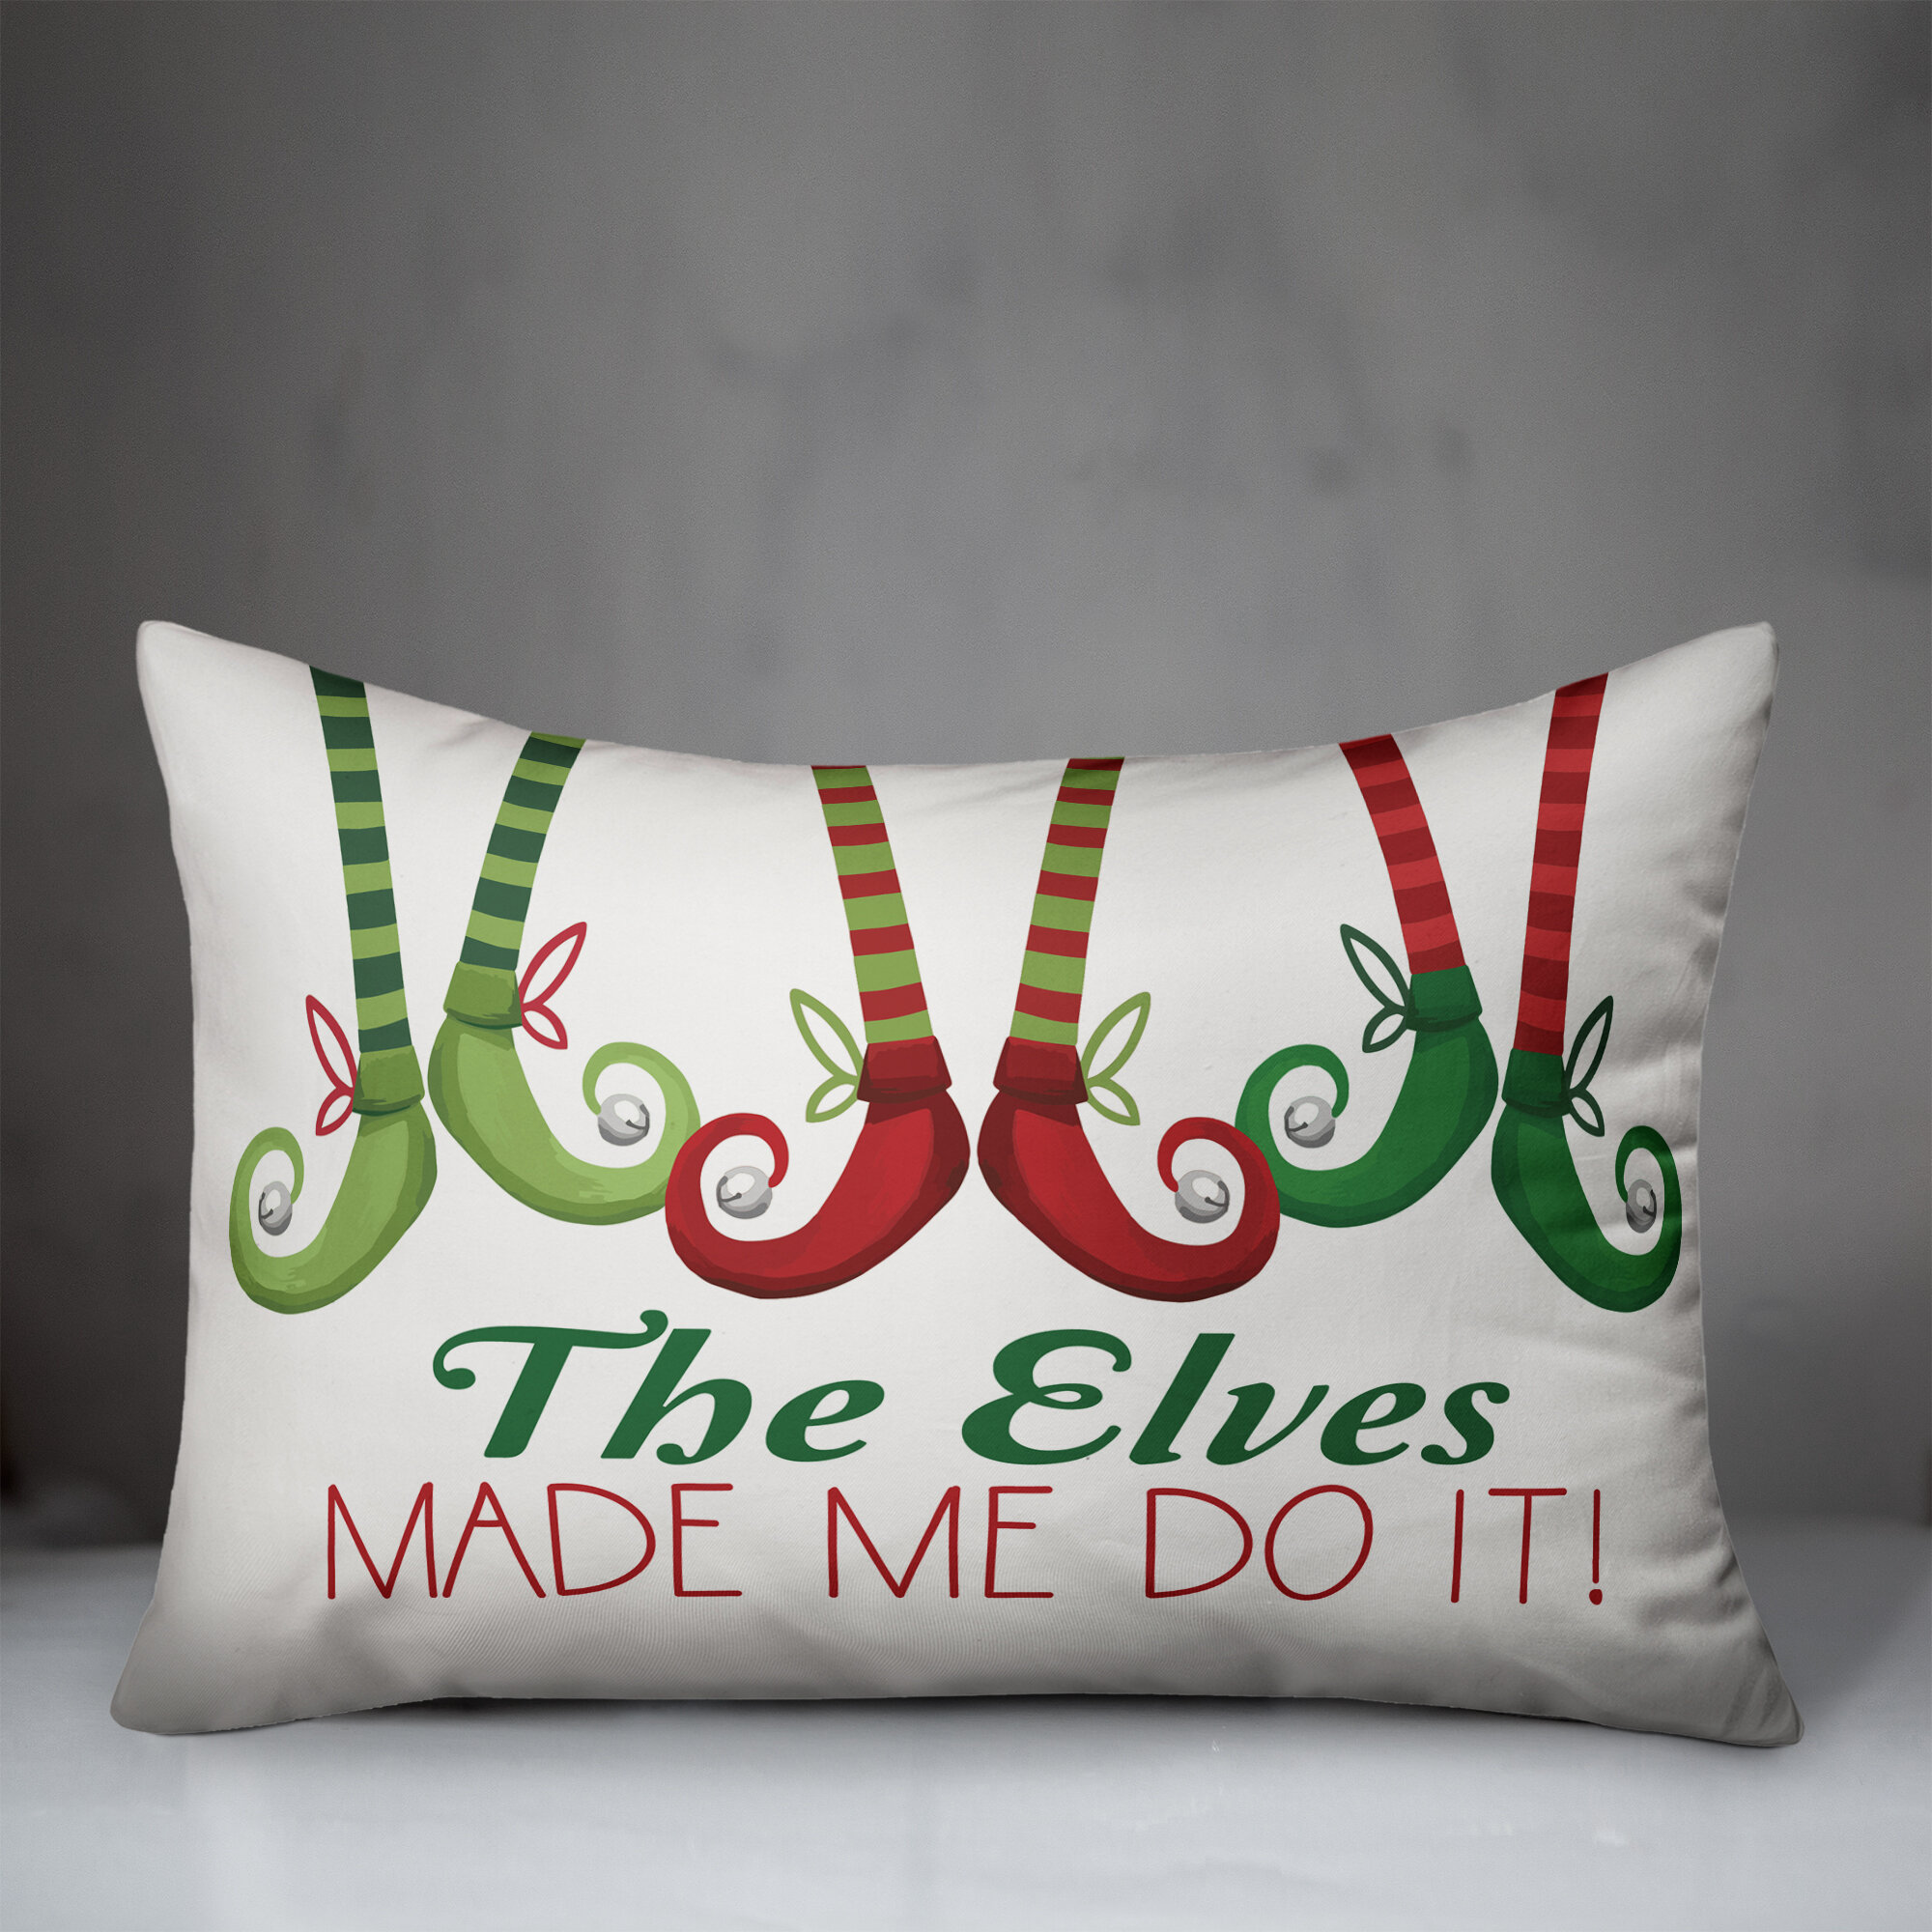 The Holiday Aisle Cournoyer The Elves Made Me Do It Lumbar Pillow Cover Wayfair